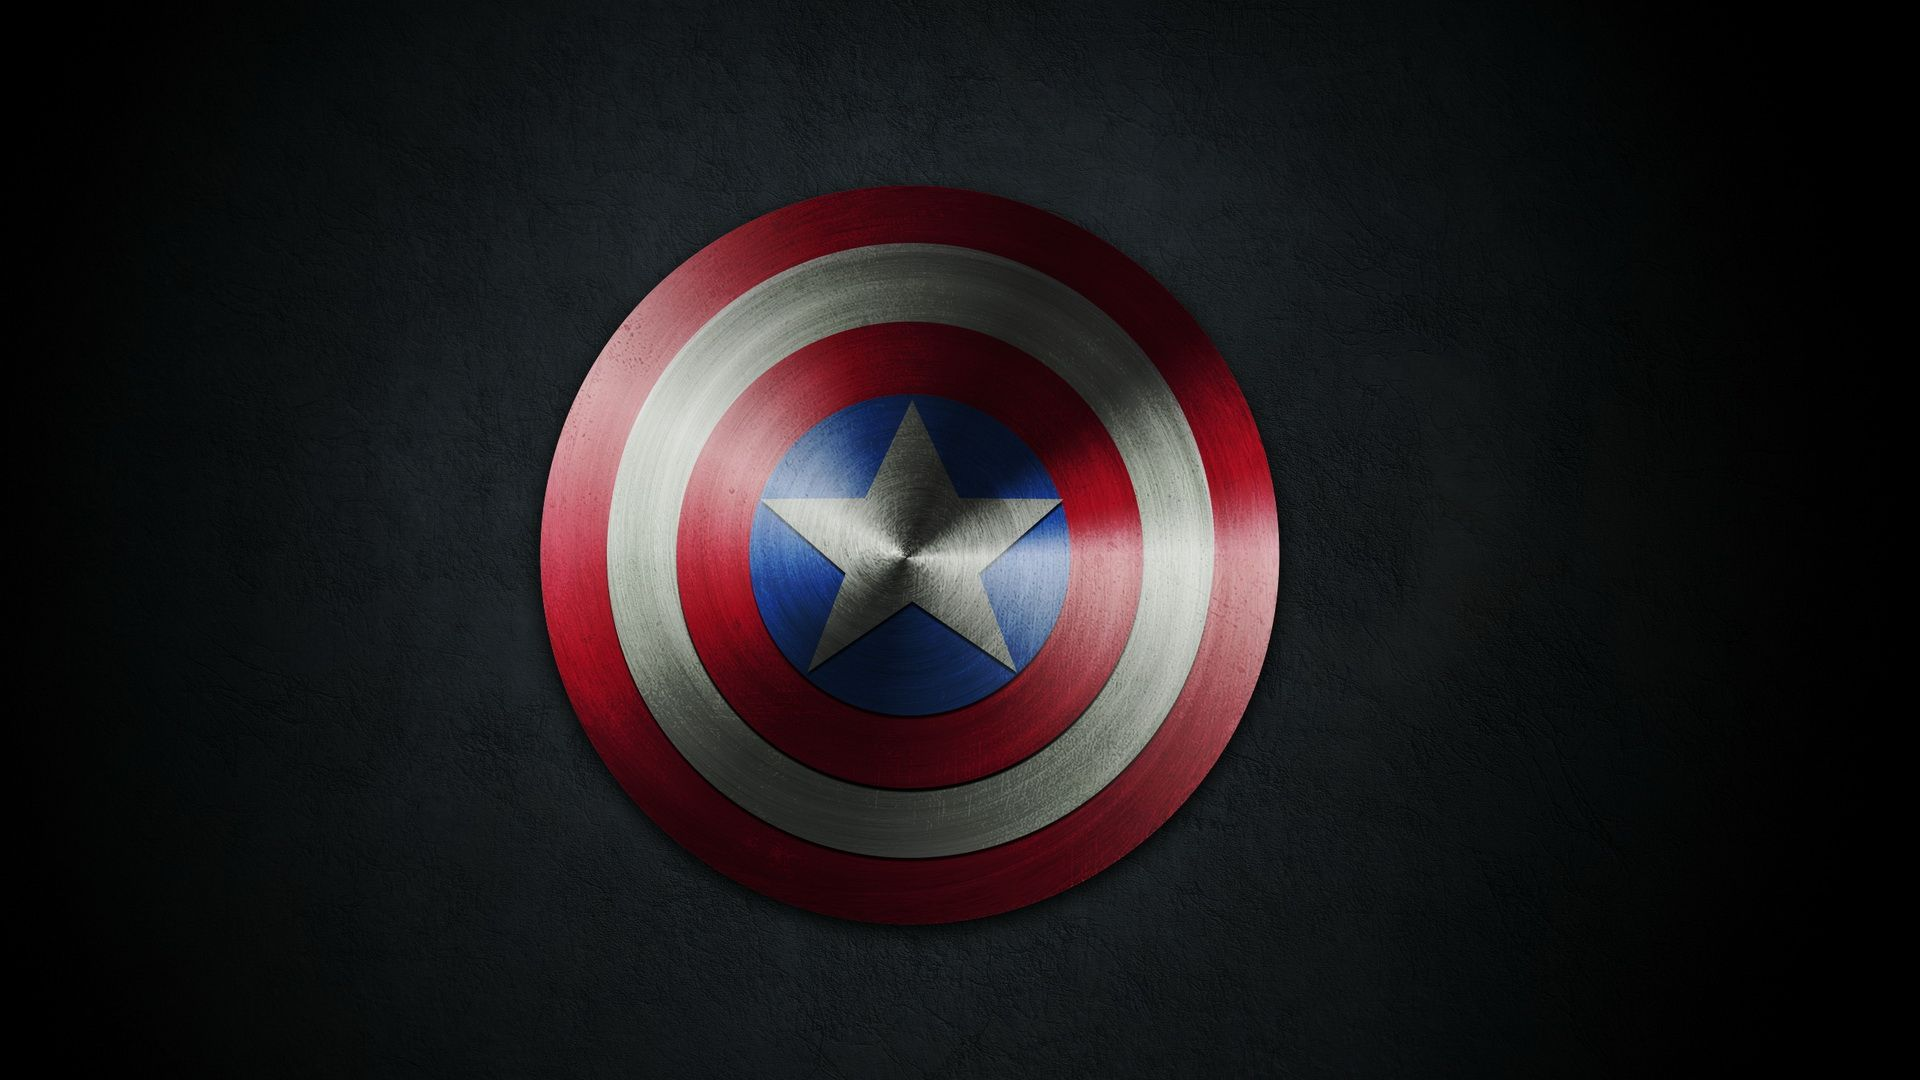 Hd wallpaper captain america - Captain America Hd Wallpapers Free Download